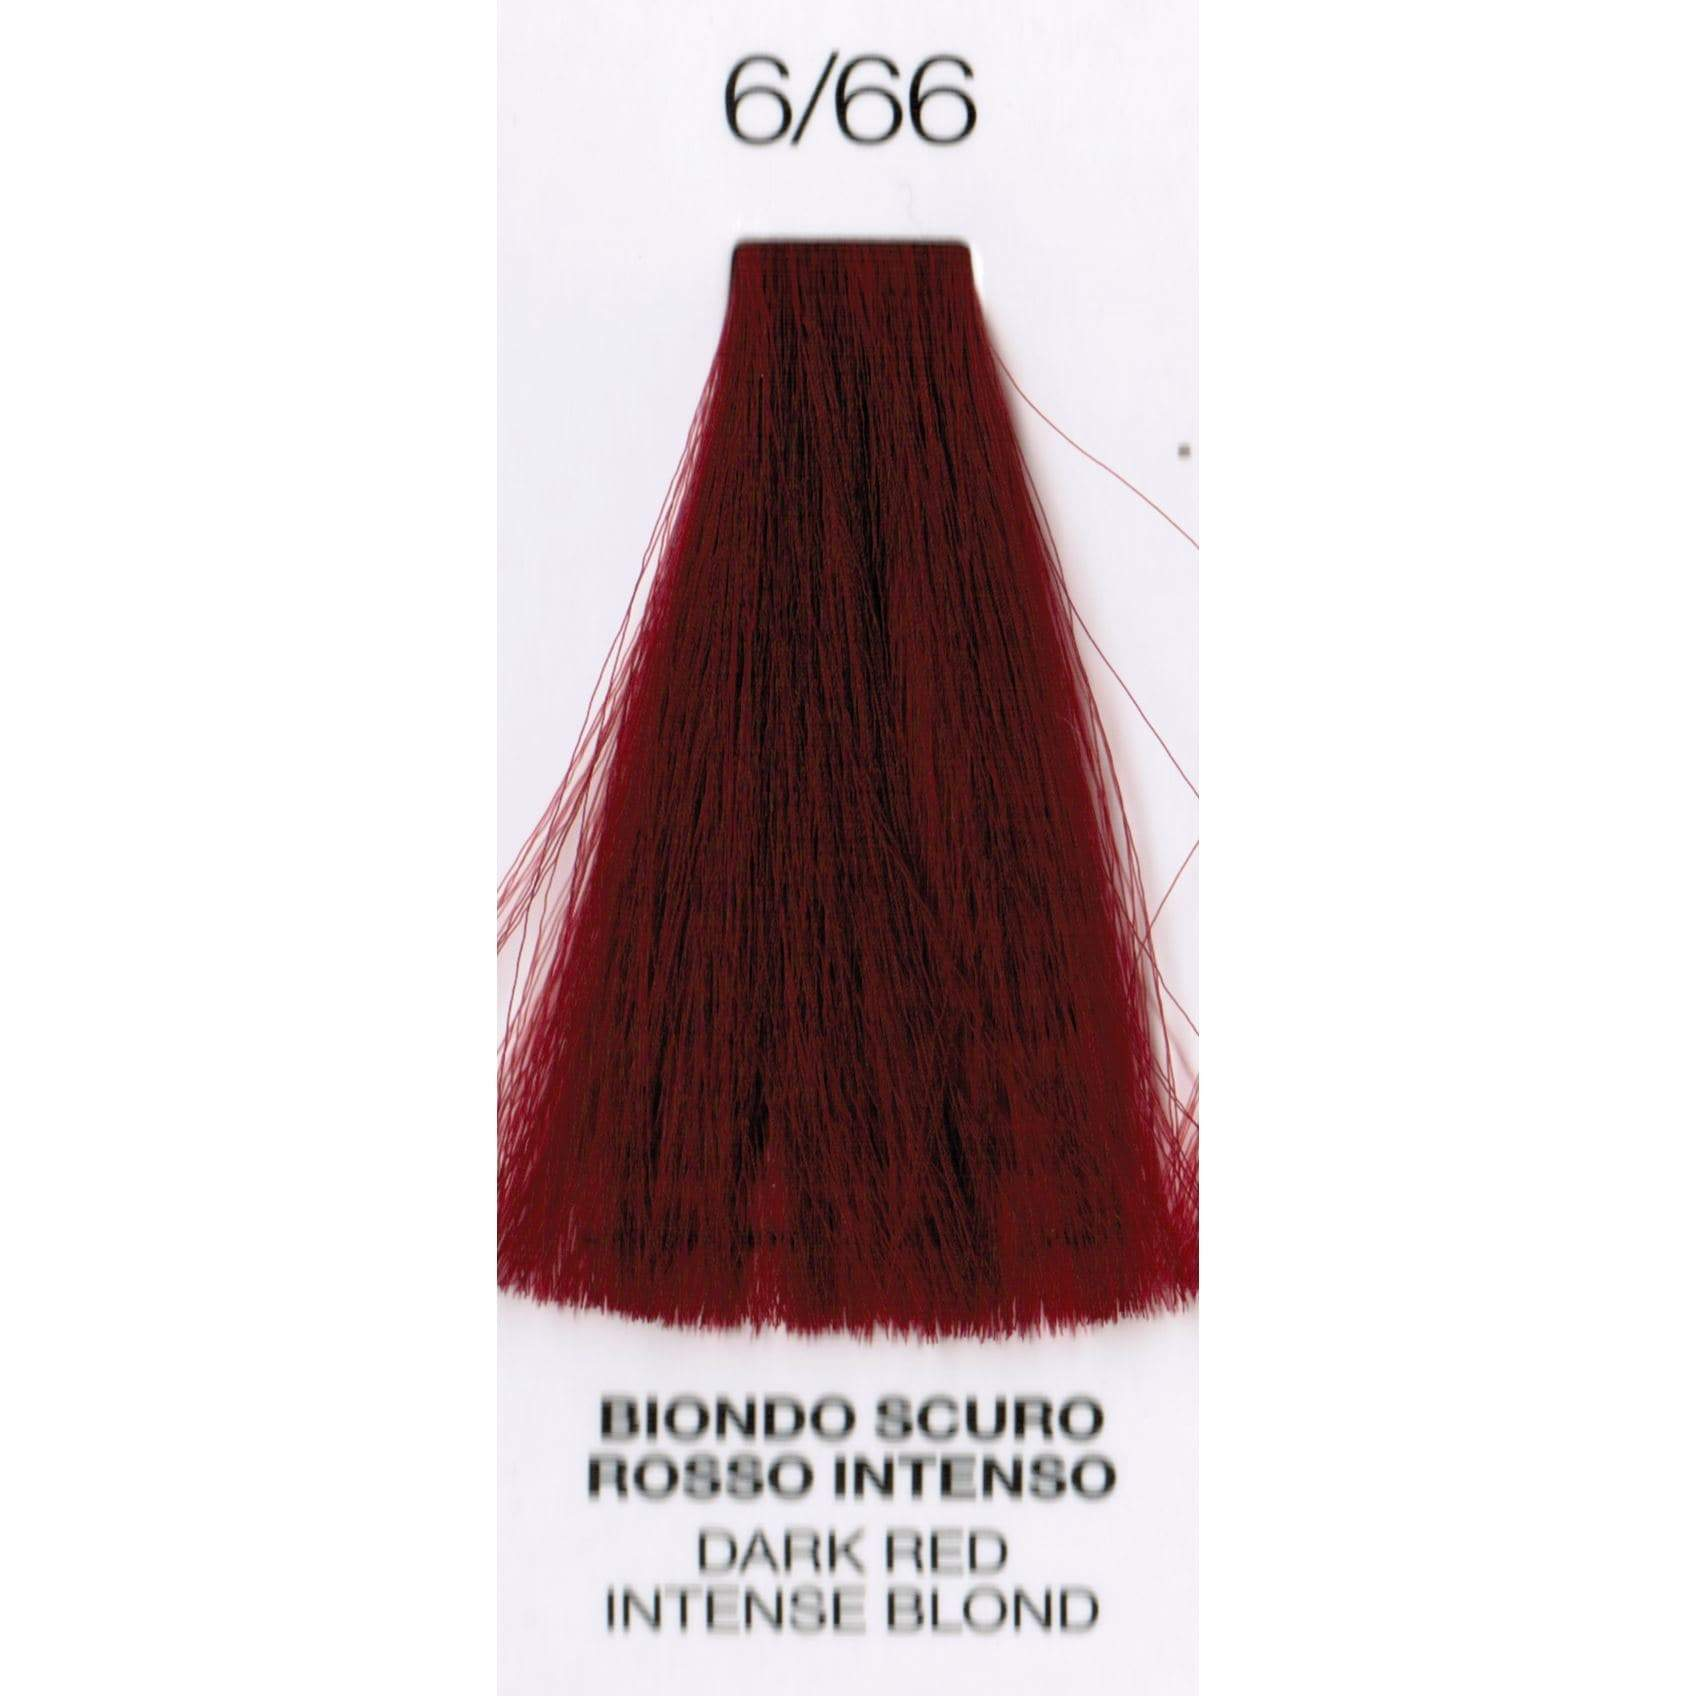 6/66 Dark Red Blonde Intense | Purity | Ammonia-Free Permanent Hair Color - SH Salons